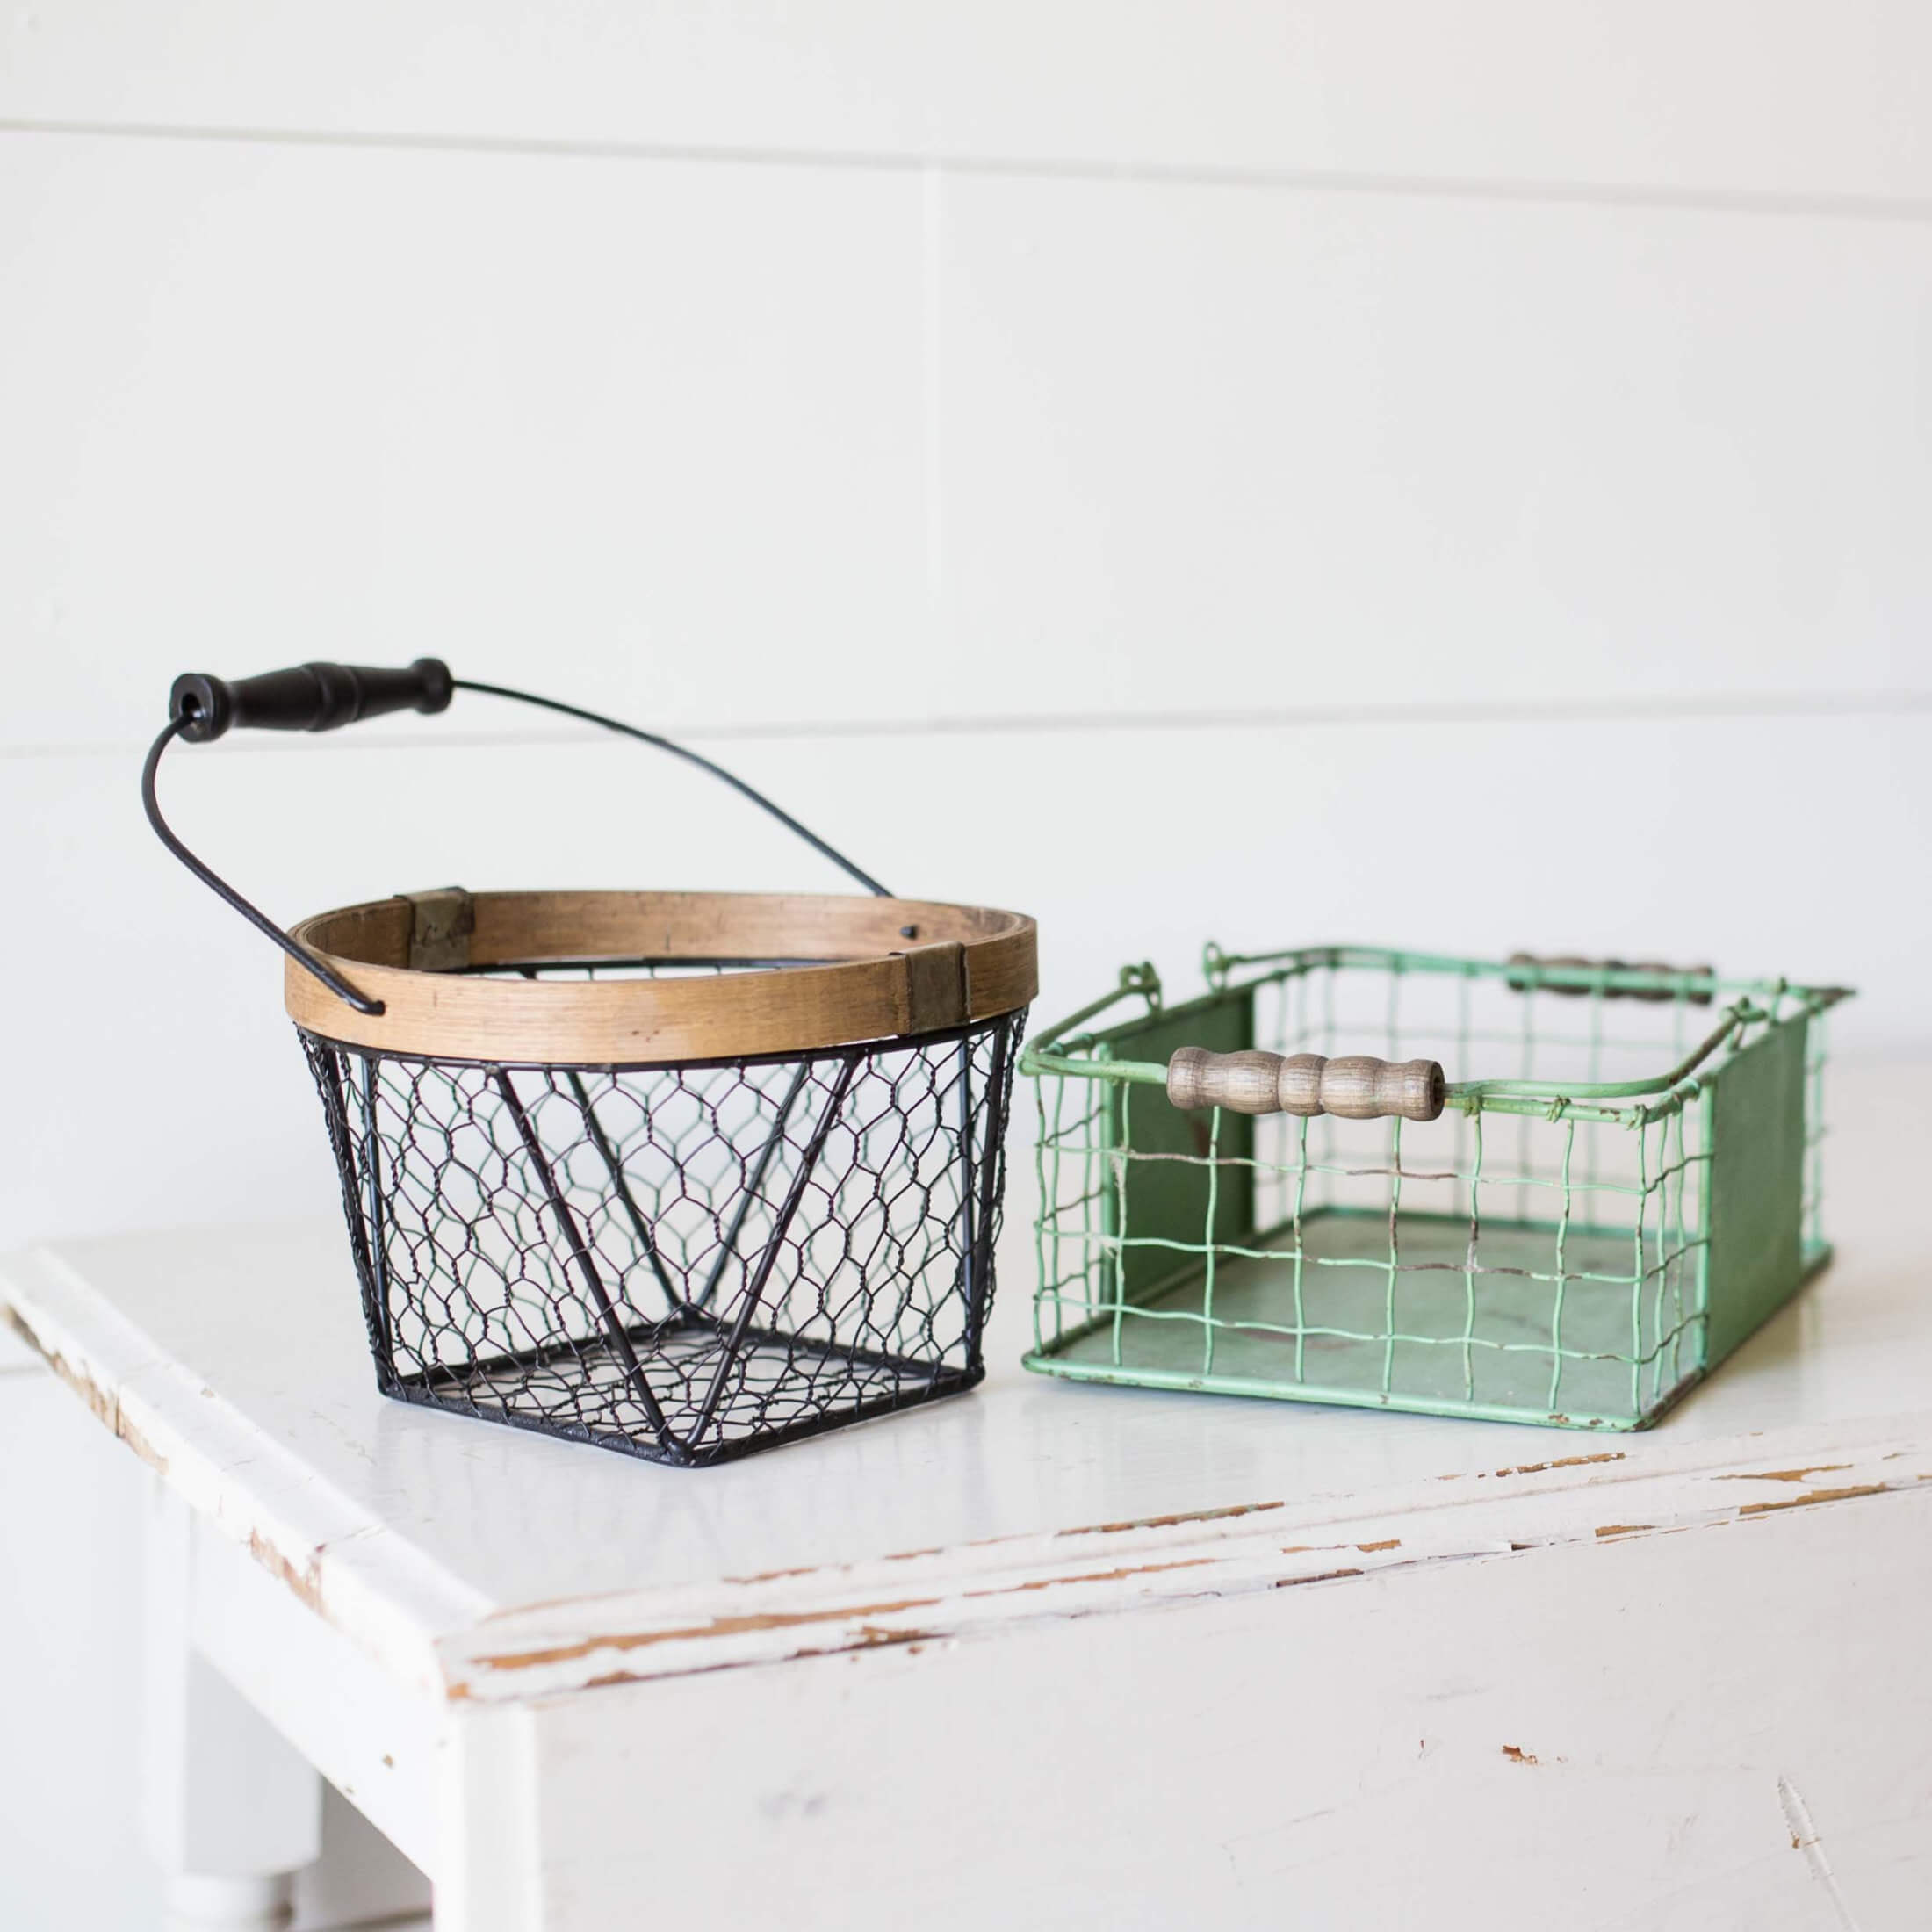 Quirky Baskets Like These Wire Beauties Make For Great Temporary Storage. So Creative. Photo By Stephanie Studer On Unsplash